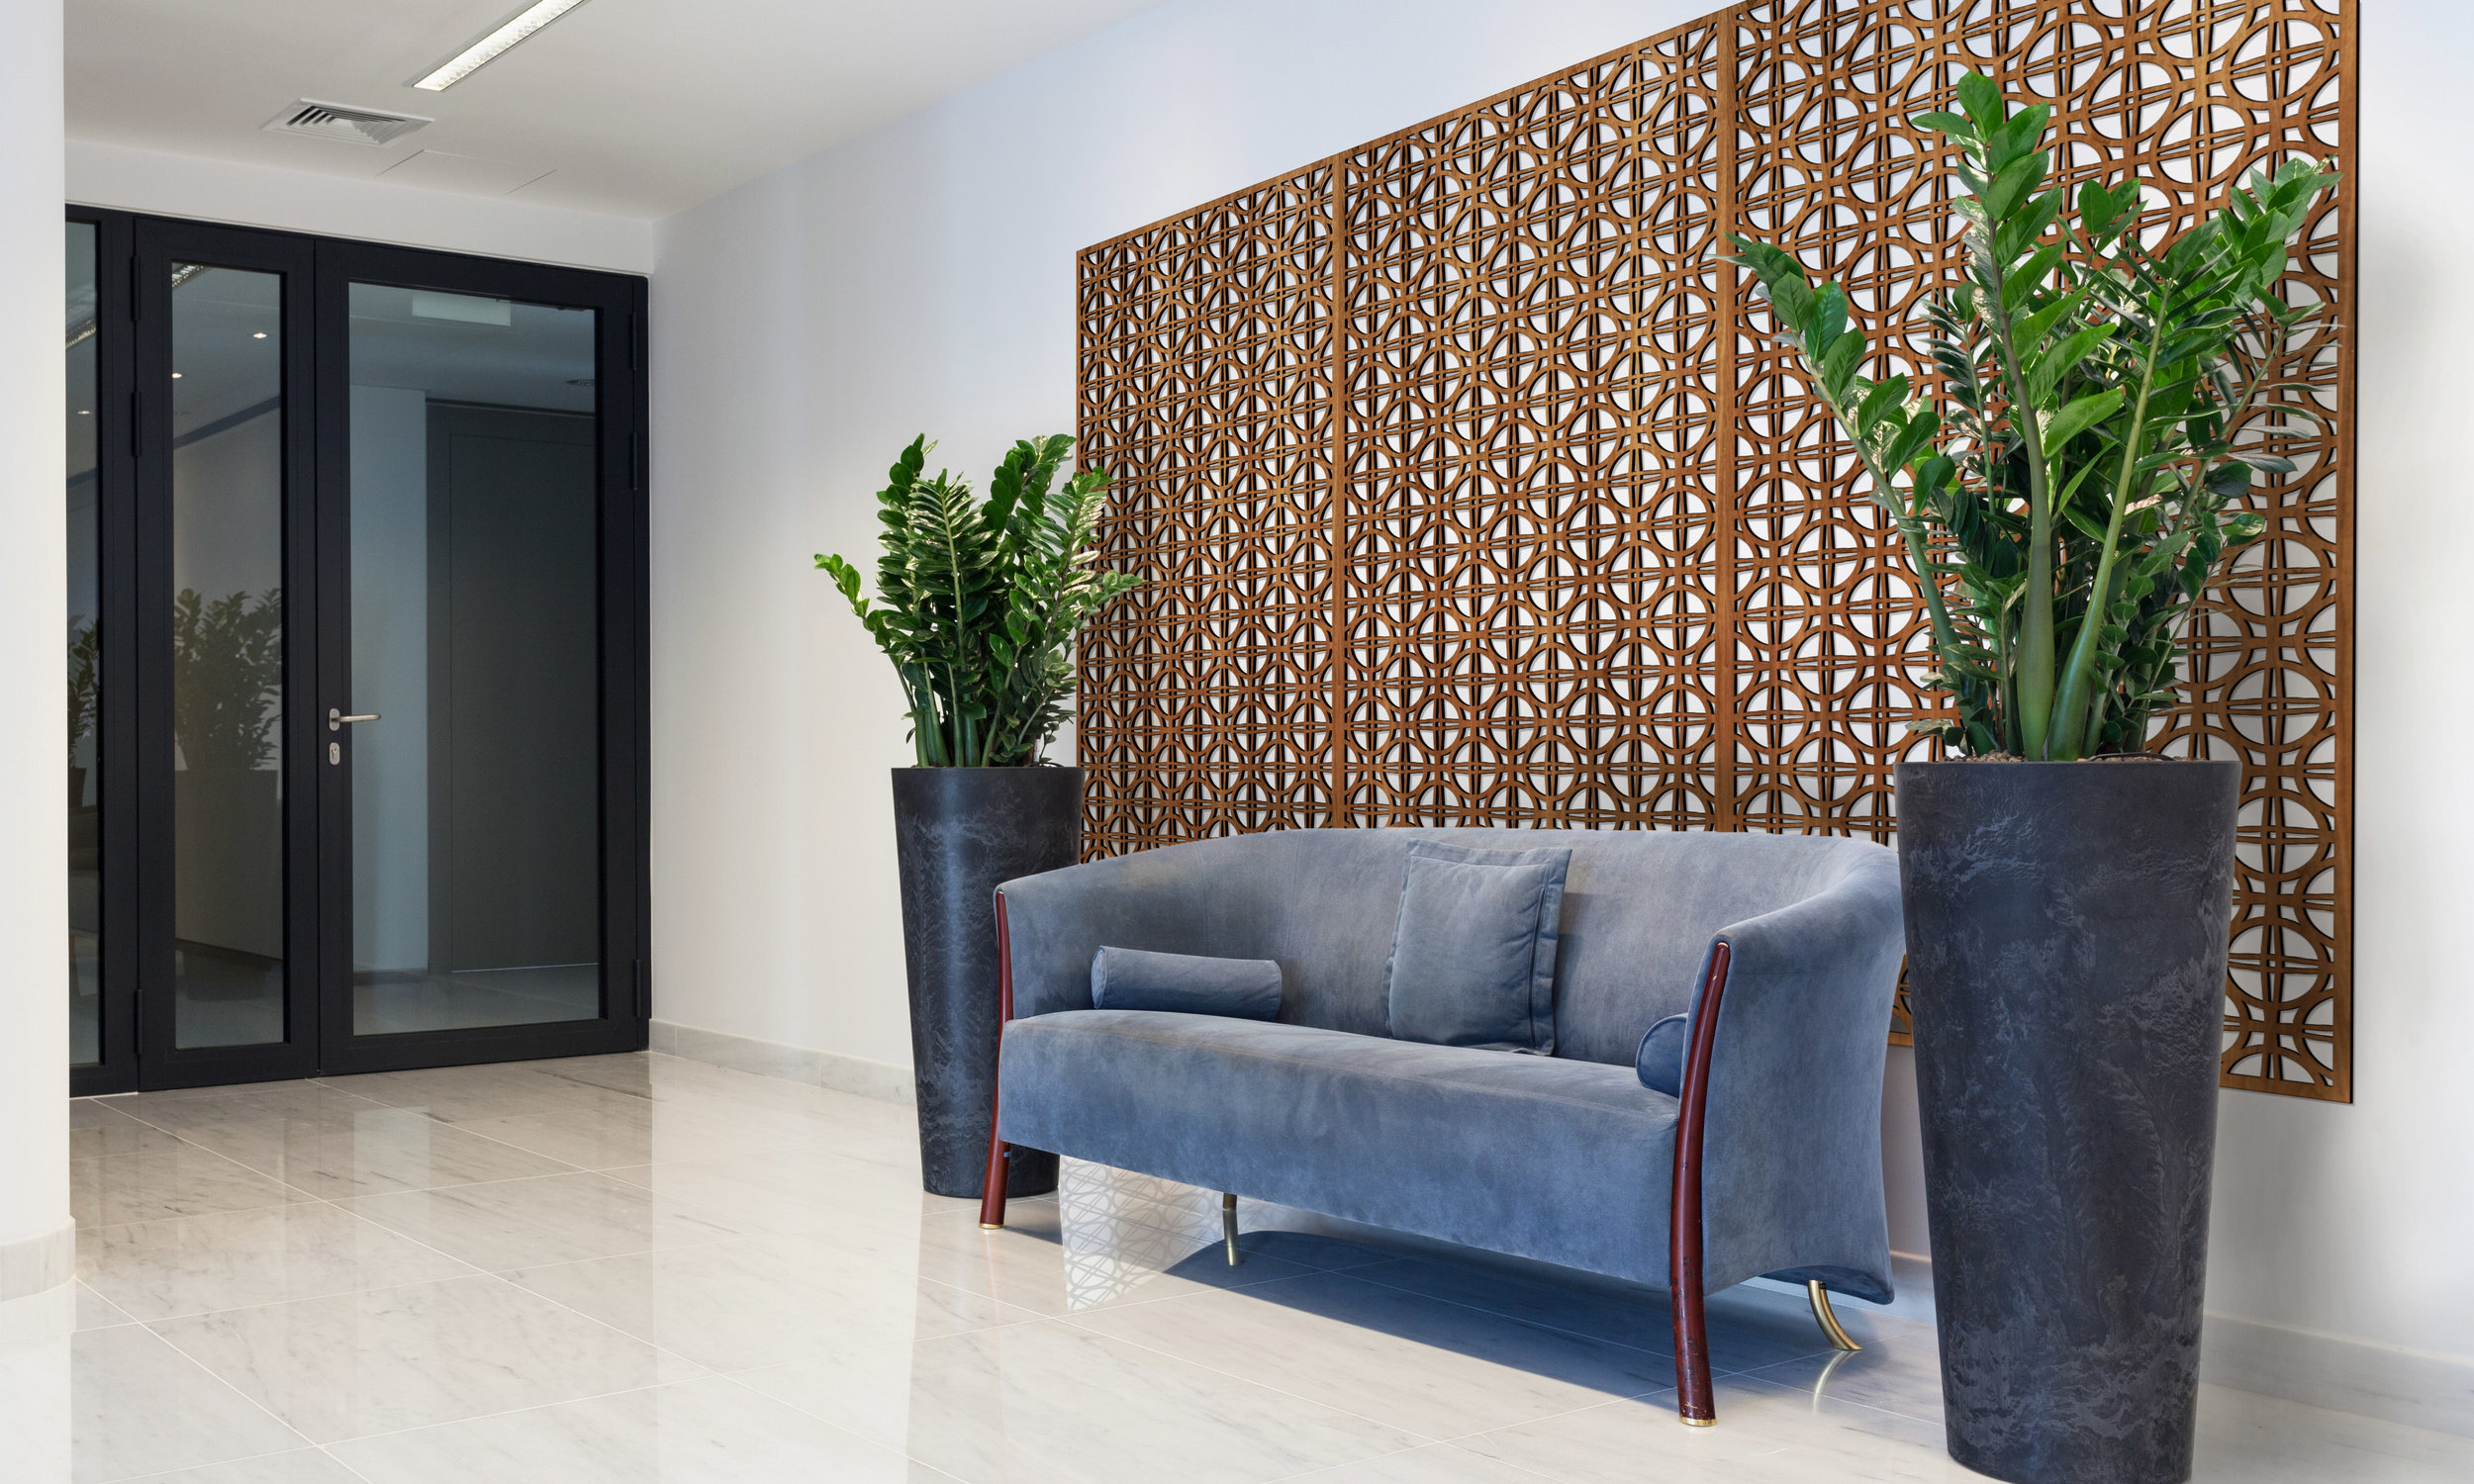 Installation Rendering A   El Paso decorative office wall panel - shown in Cherry